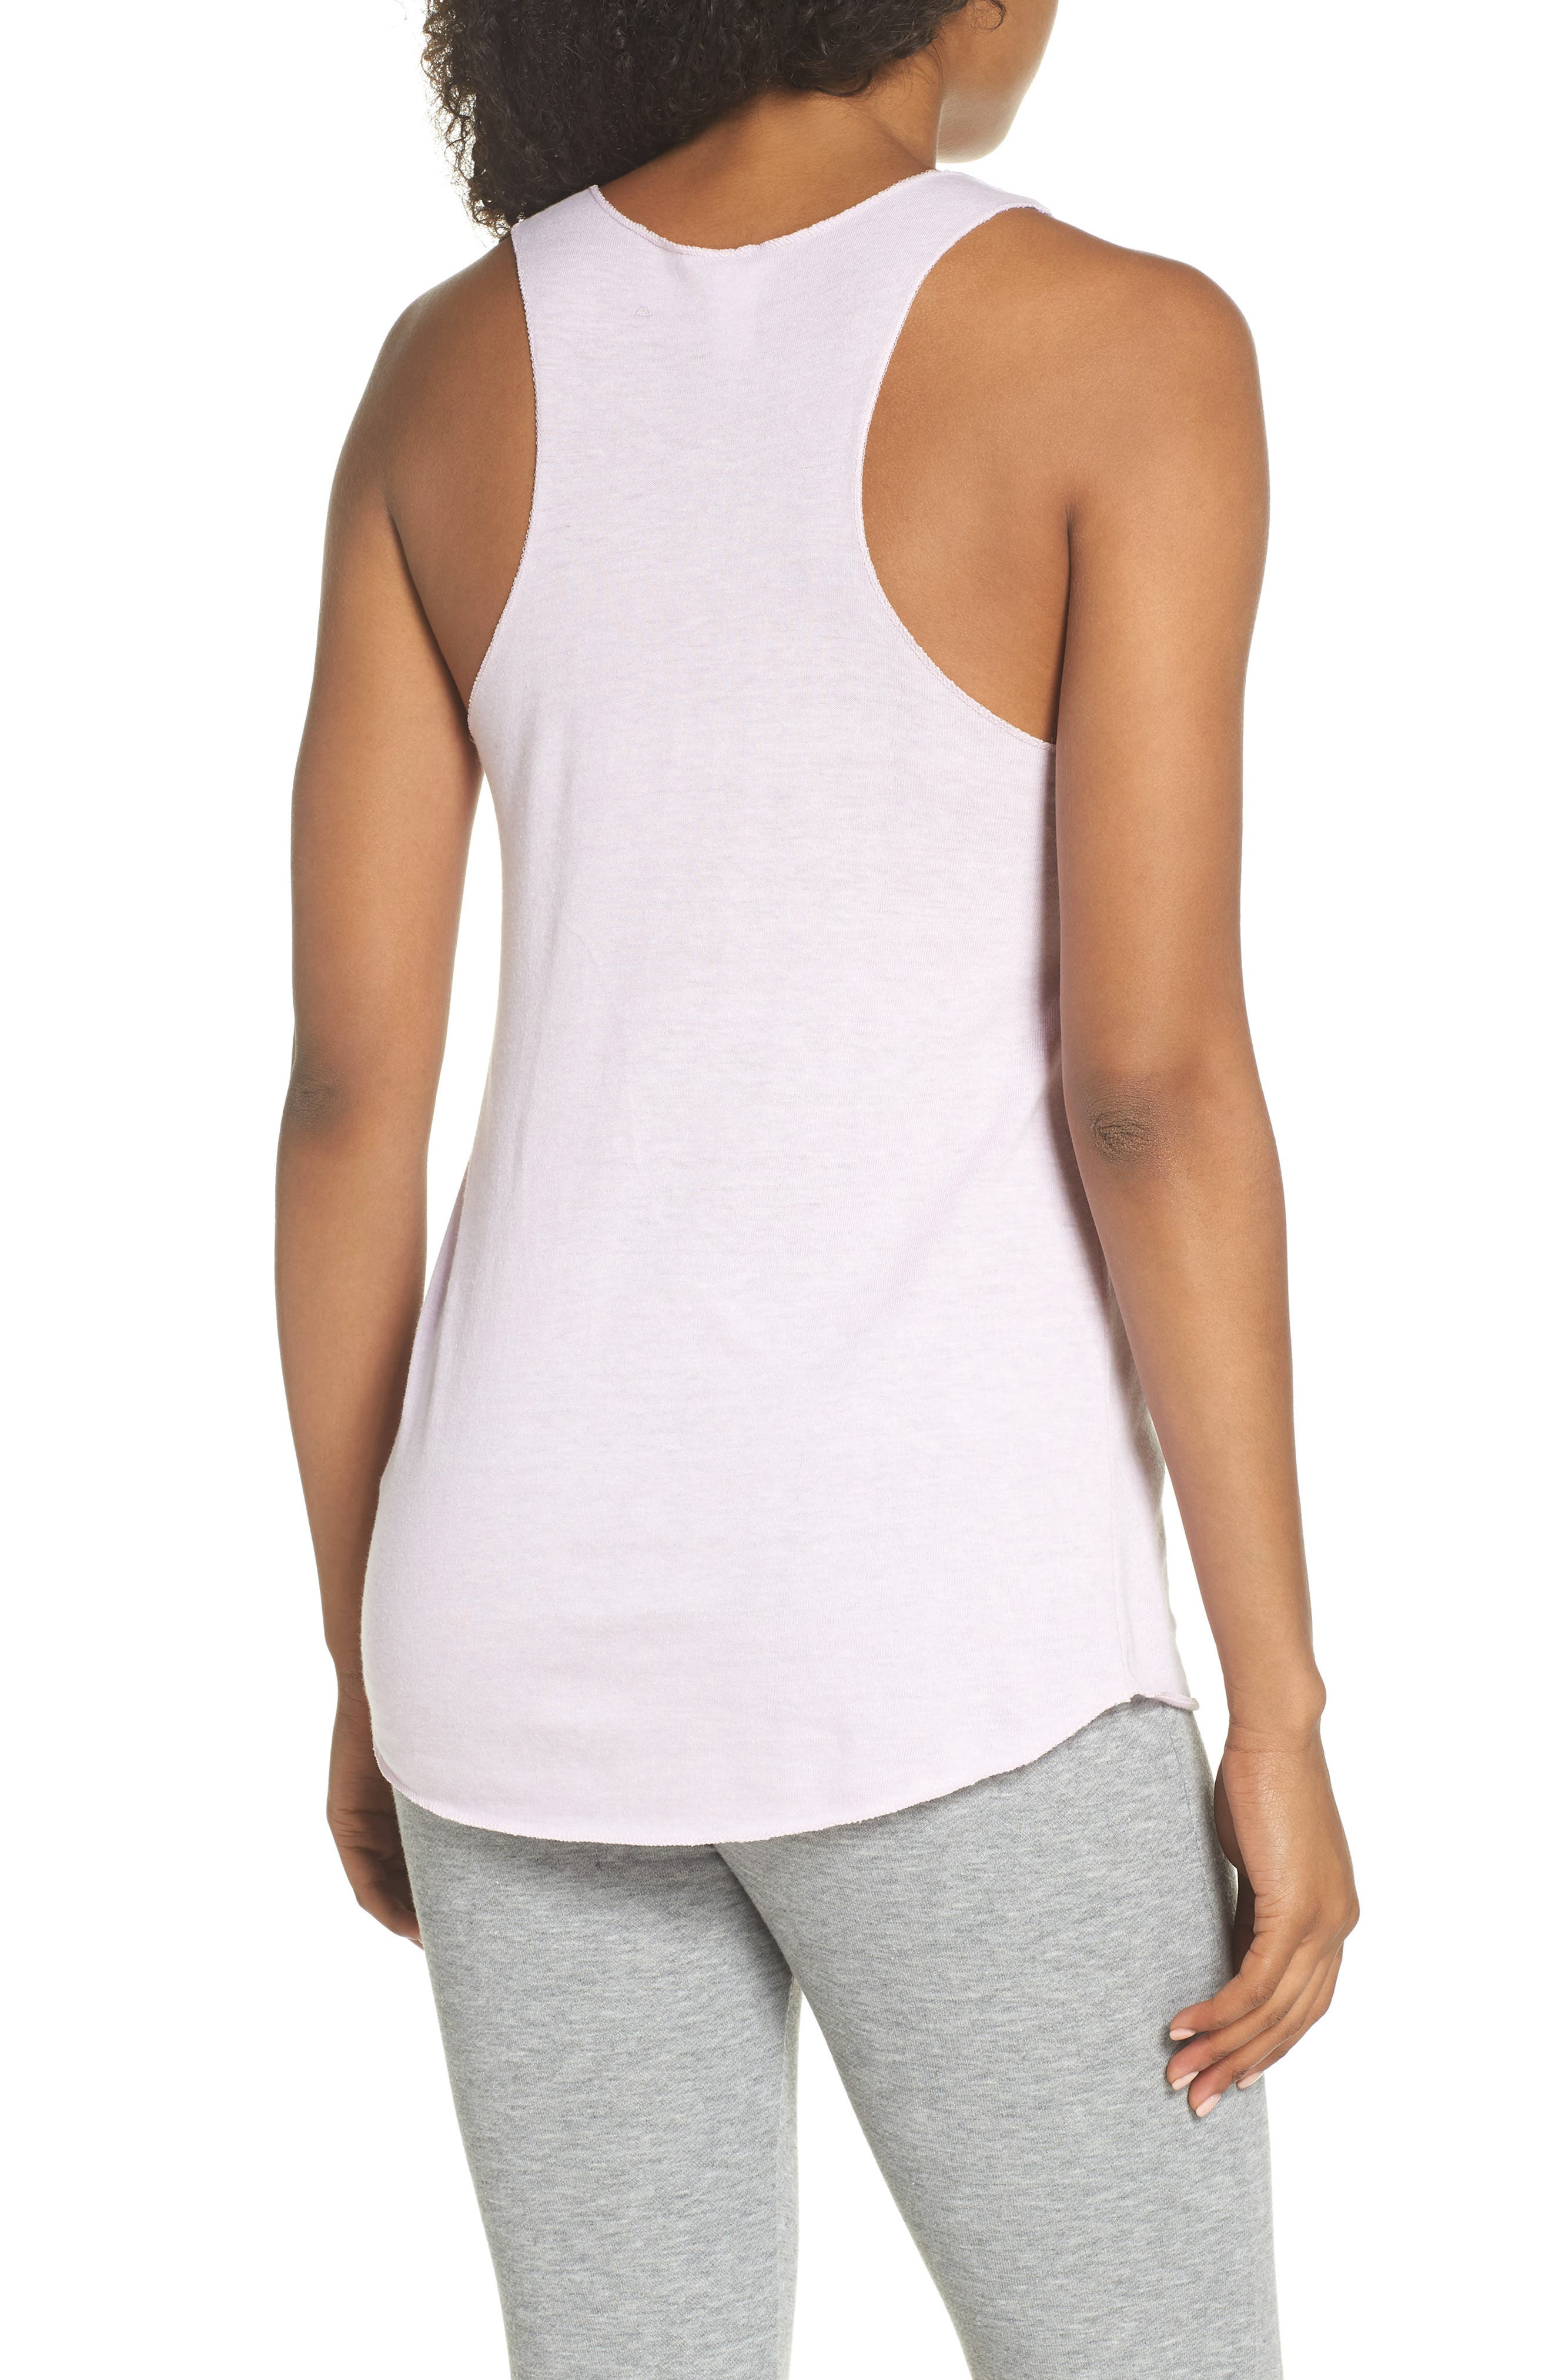 Meegs Racerback Tank,                             Alternate thumbnail 2, color,                             Eco Lilac Orchid